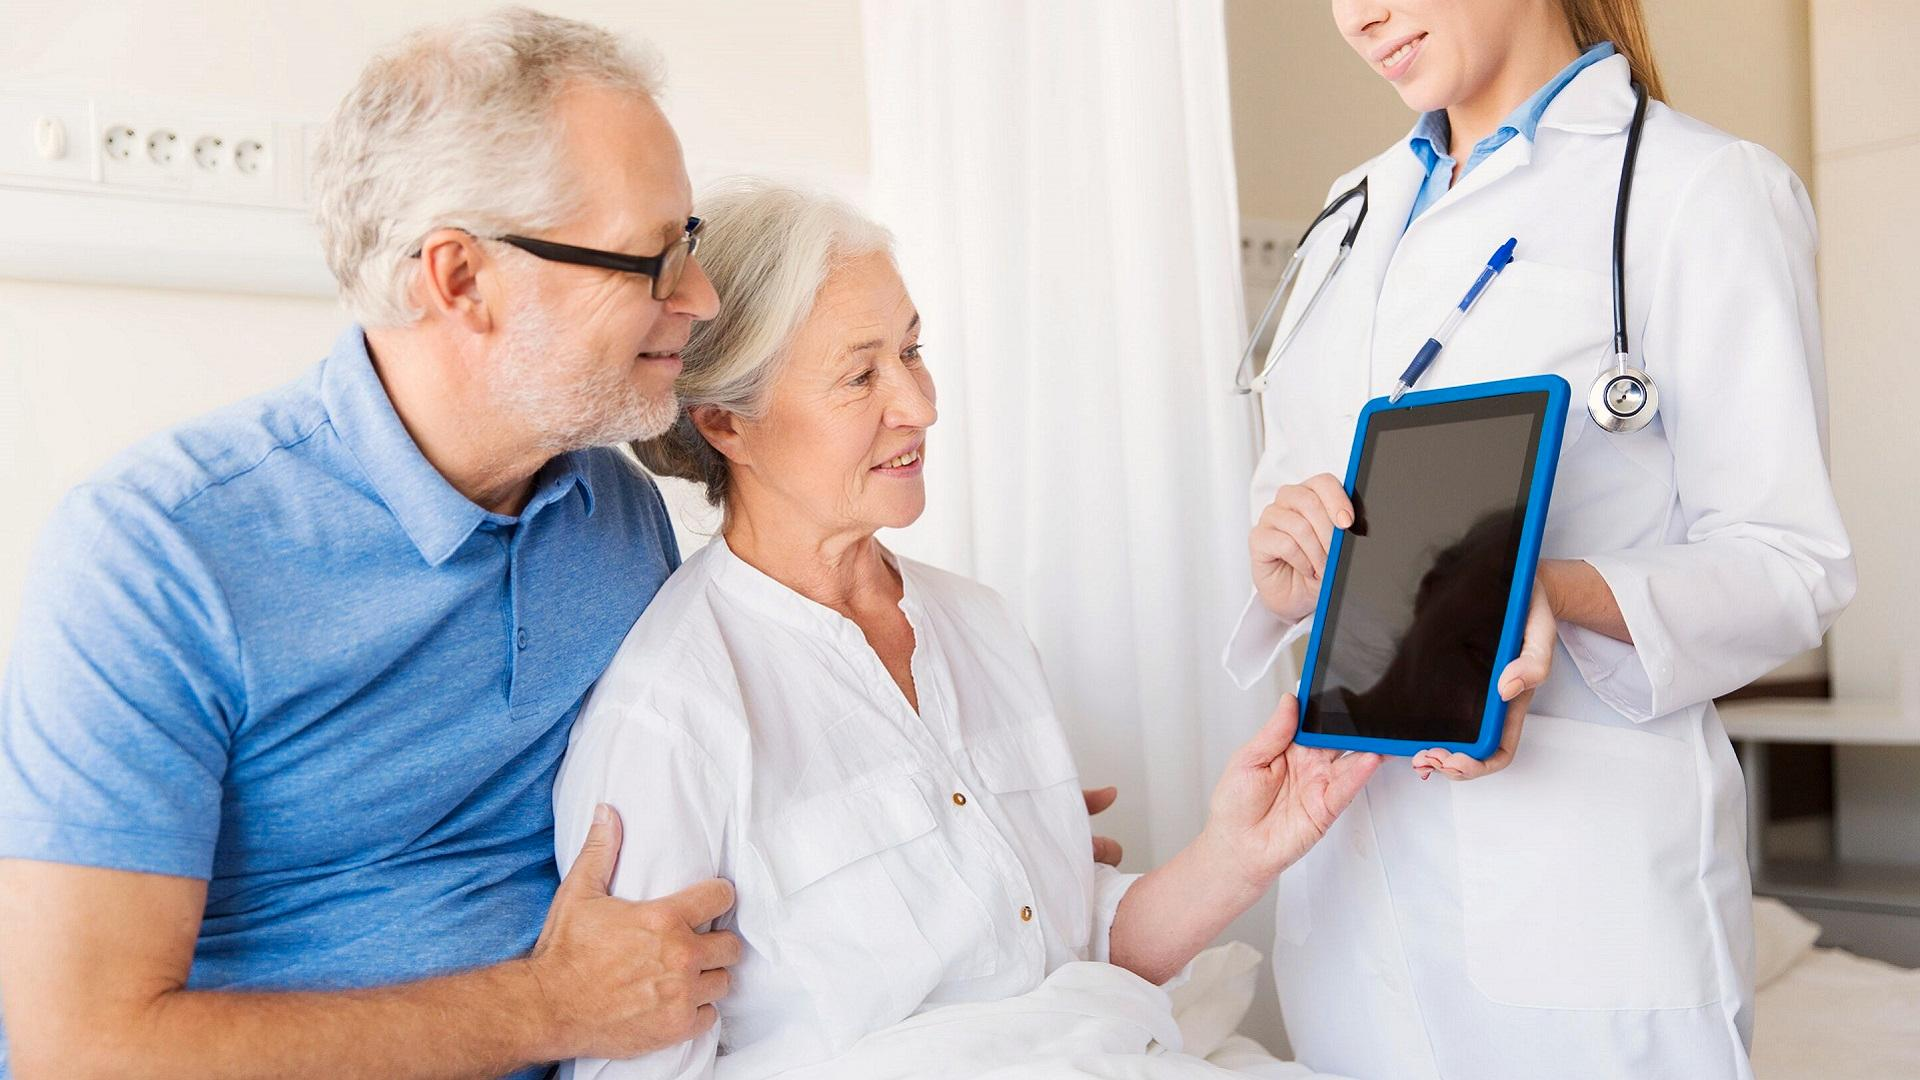 doctor shows patient something on a tablet